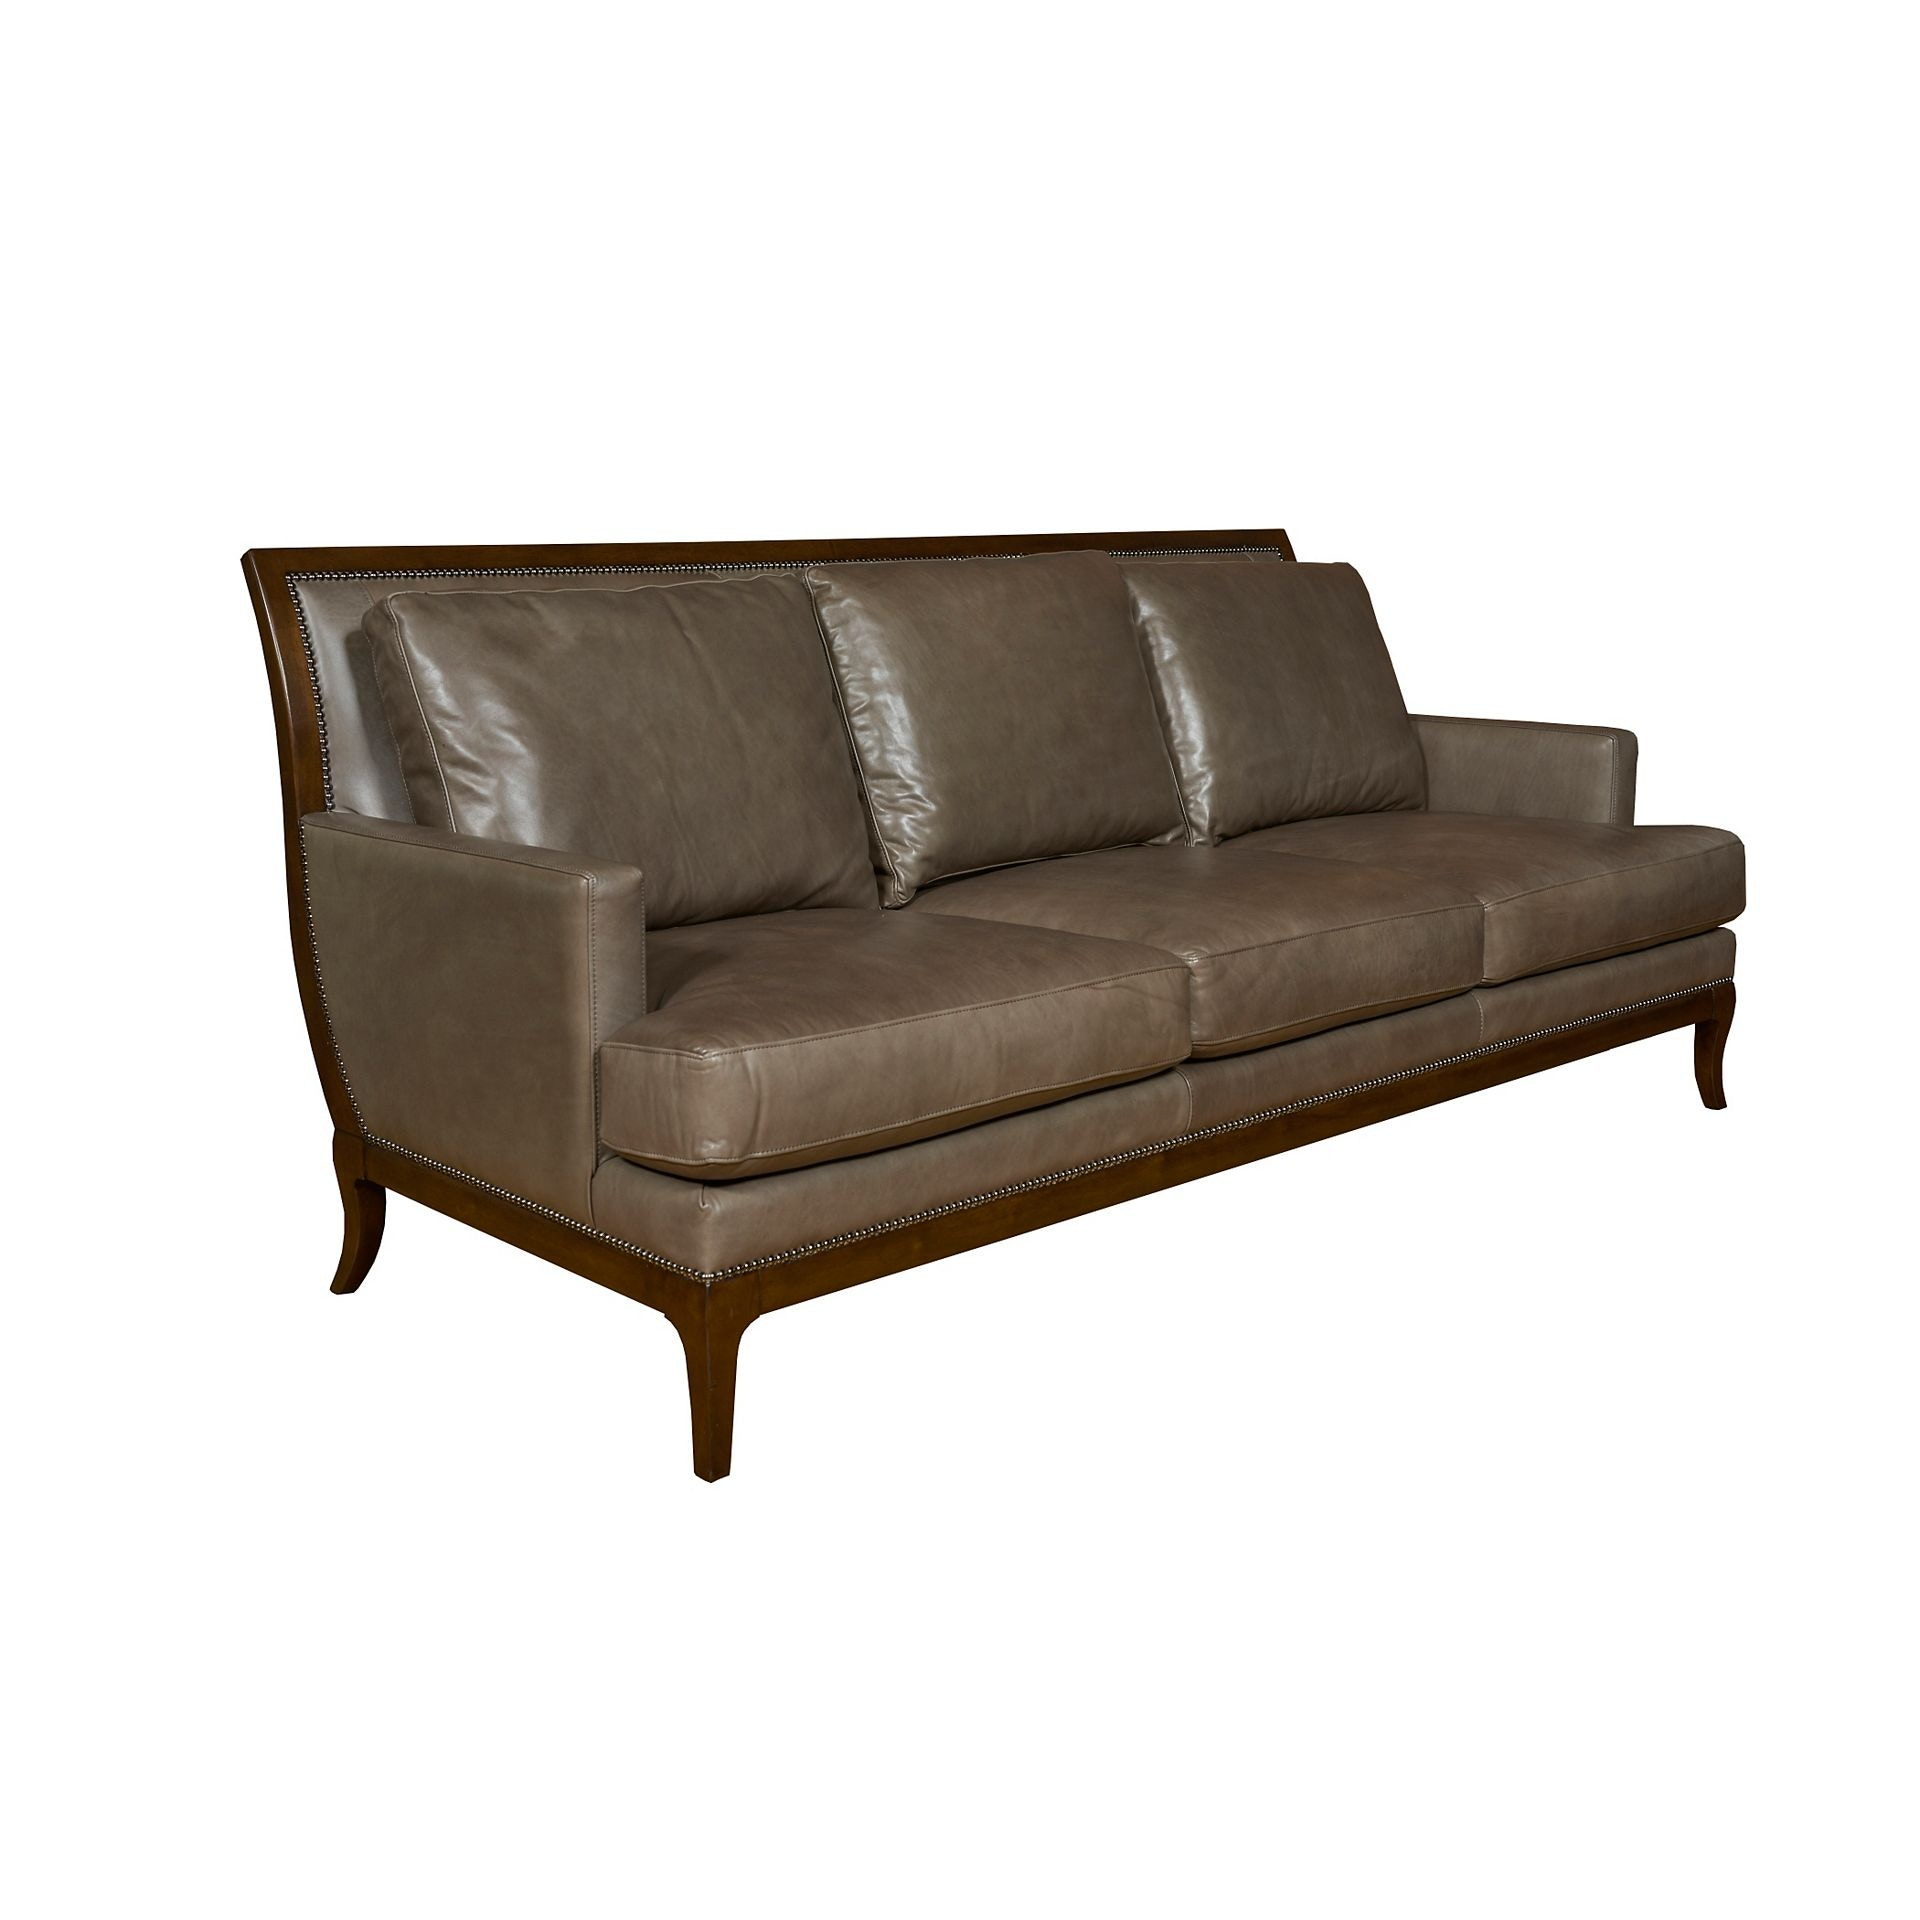 Henredon Furniture Henredon Leather Company Harveys Sofa IL8870 C